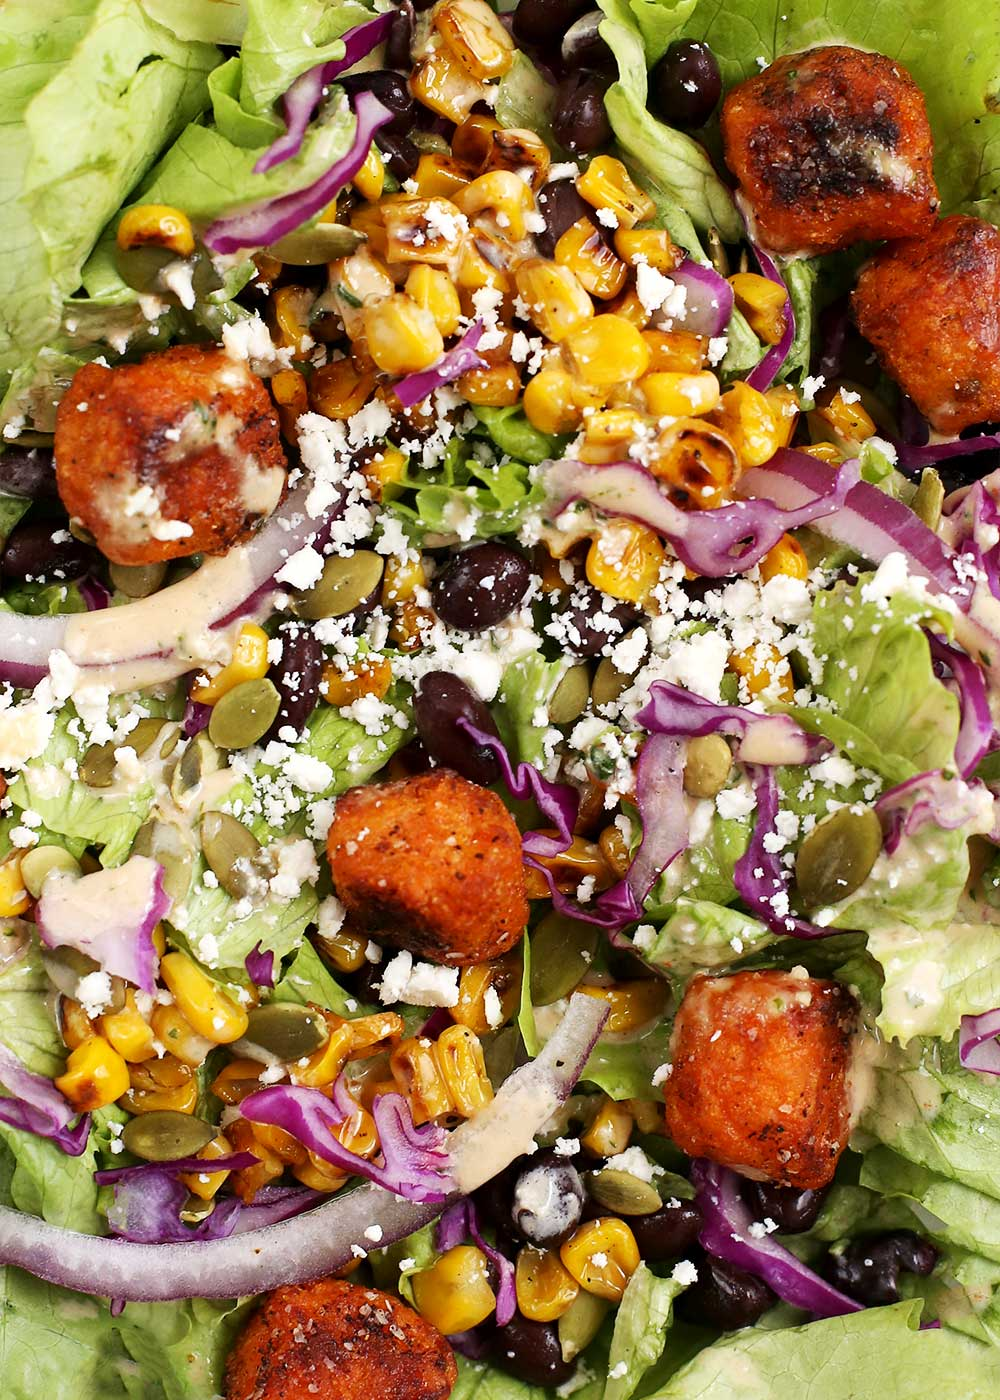 BBQ Ranch Southwest Salad with Sweet Potato Crouton Tots from The Fauxmartha